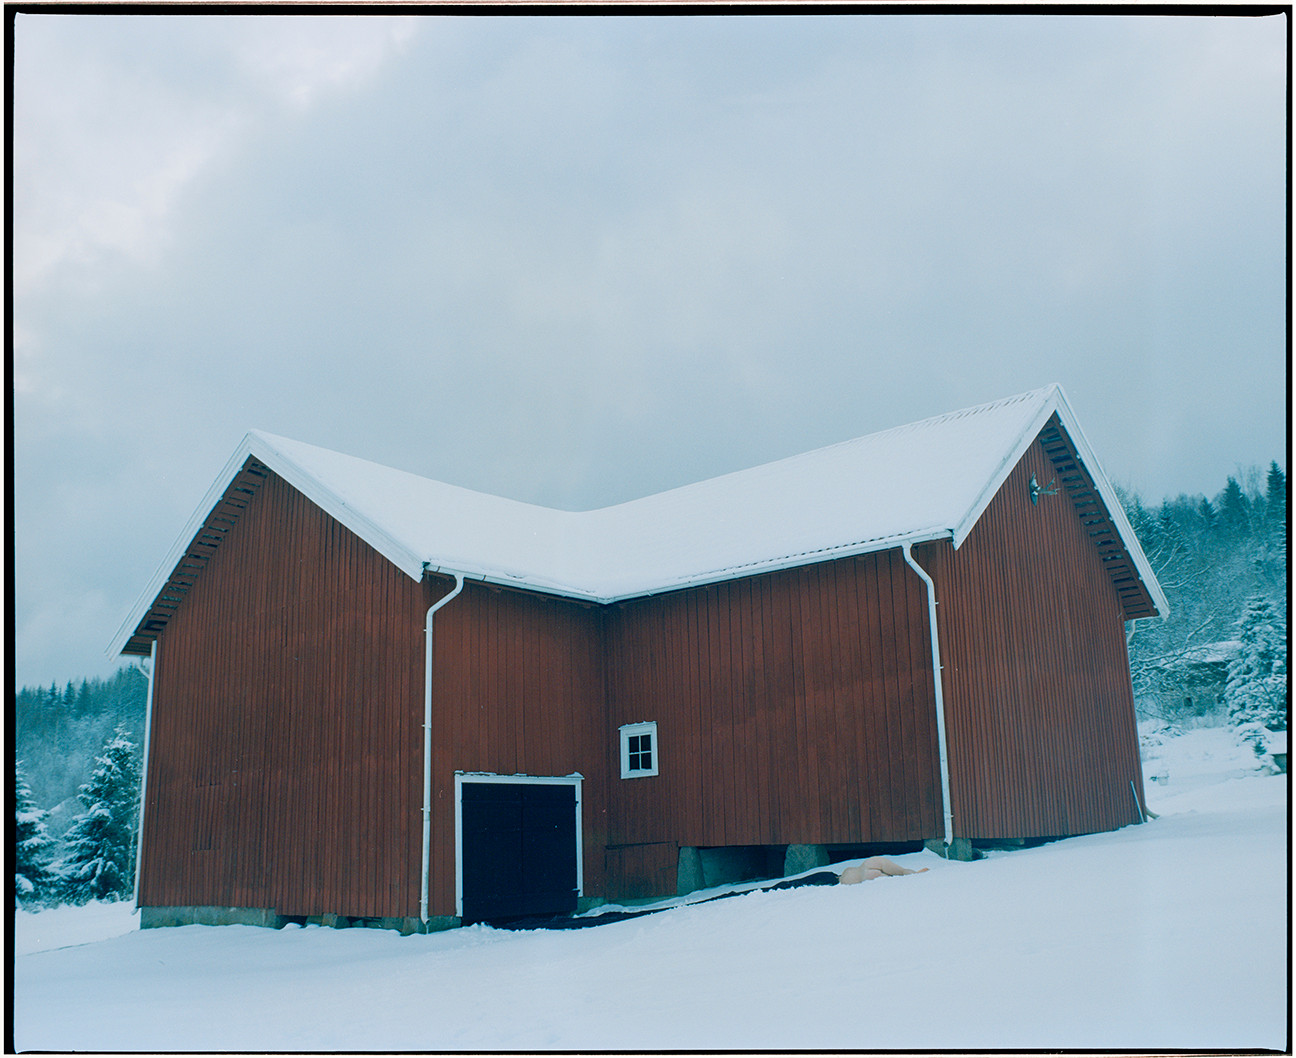 Body and the Barn - 3